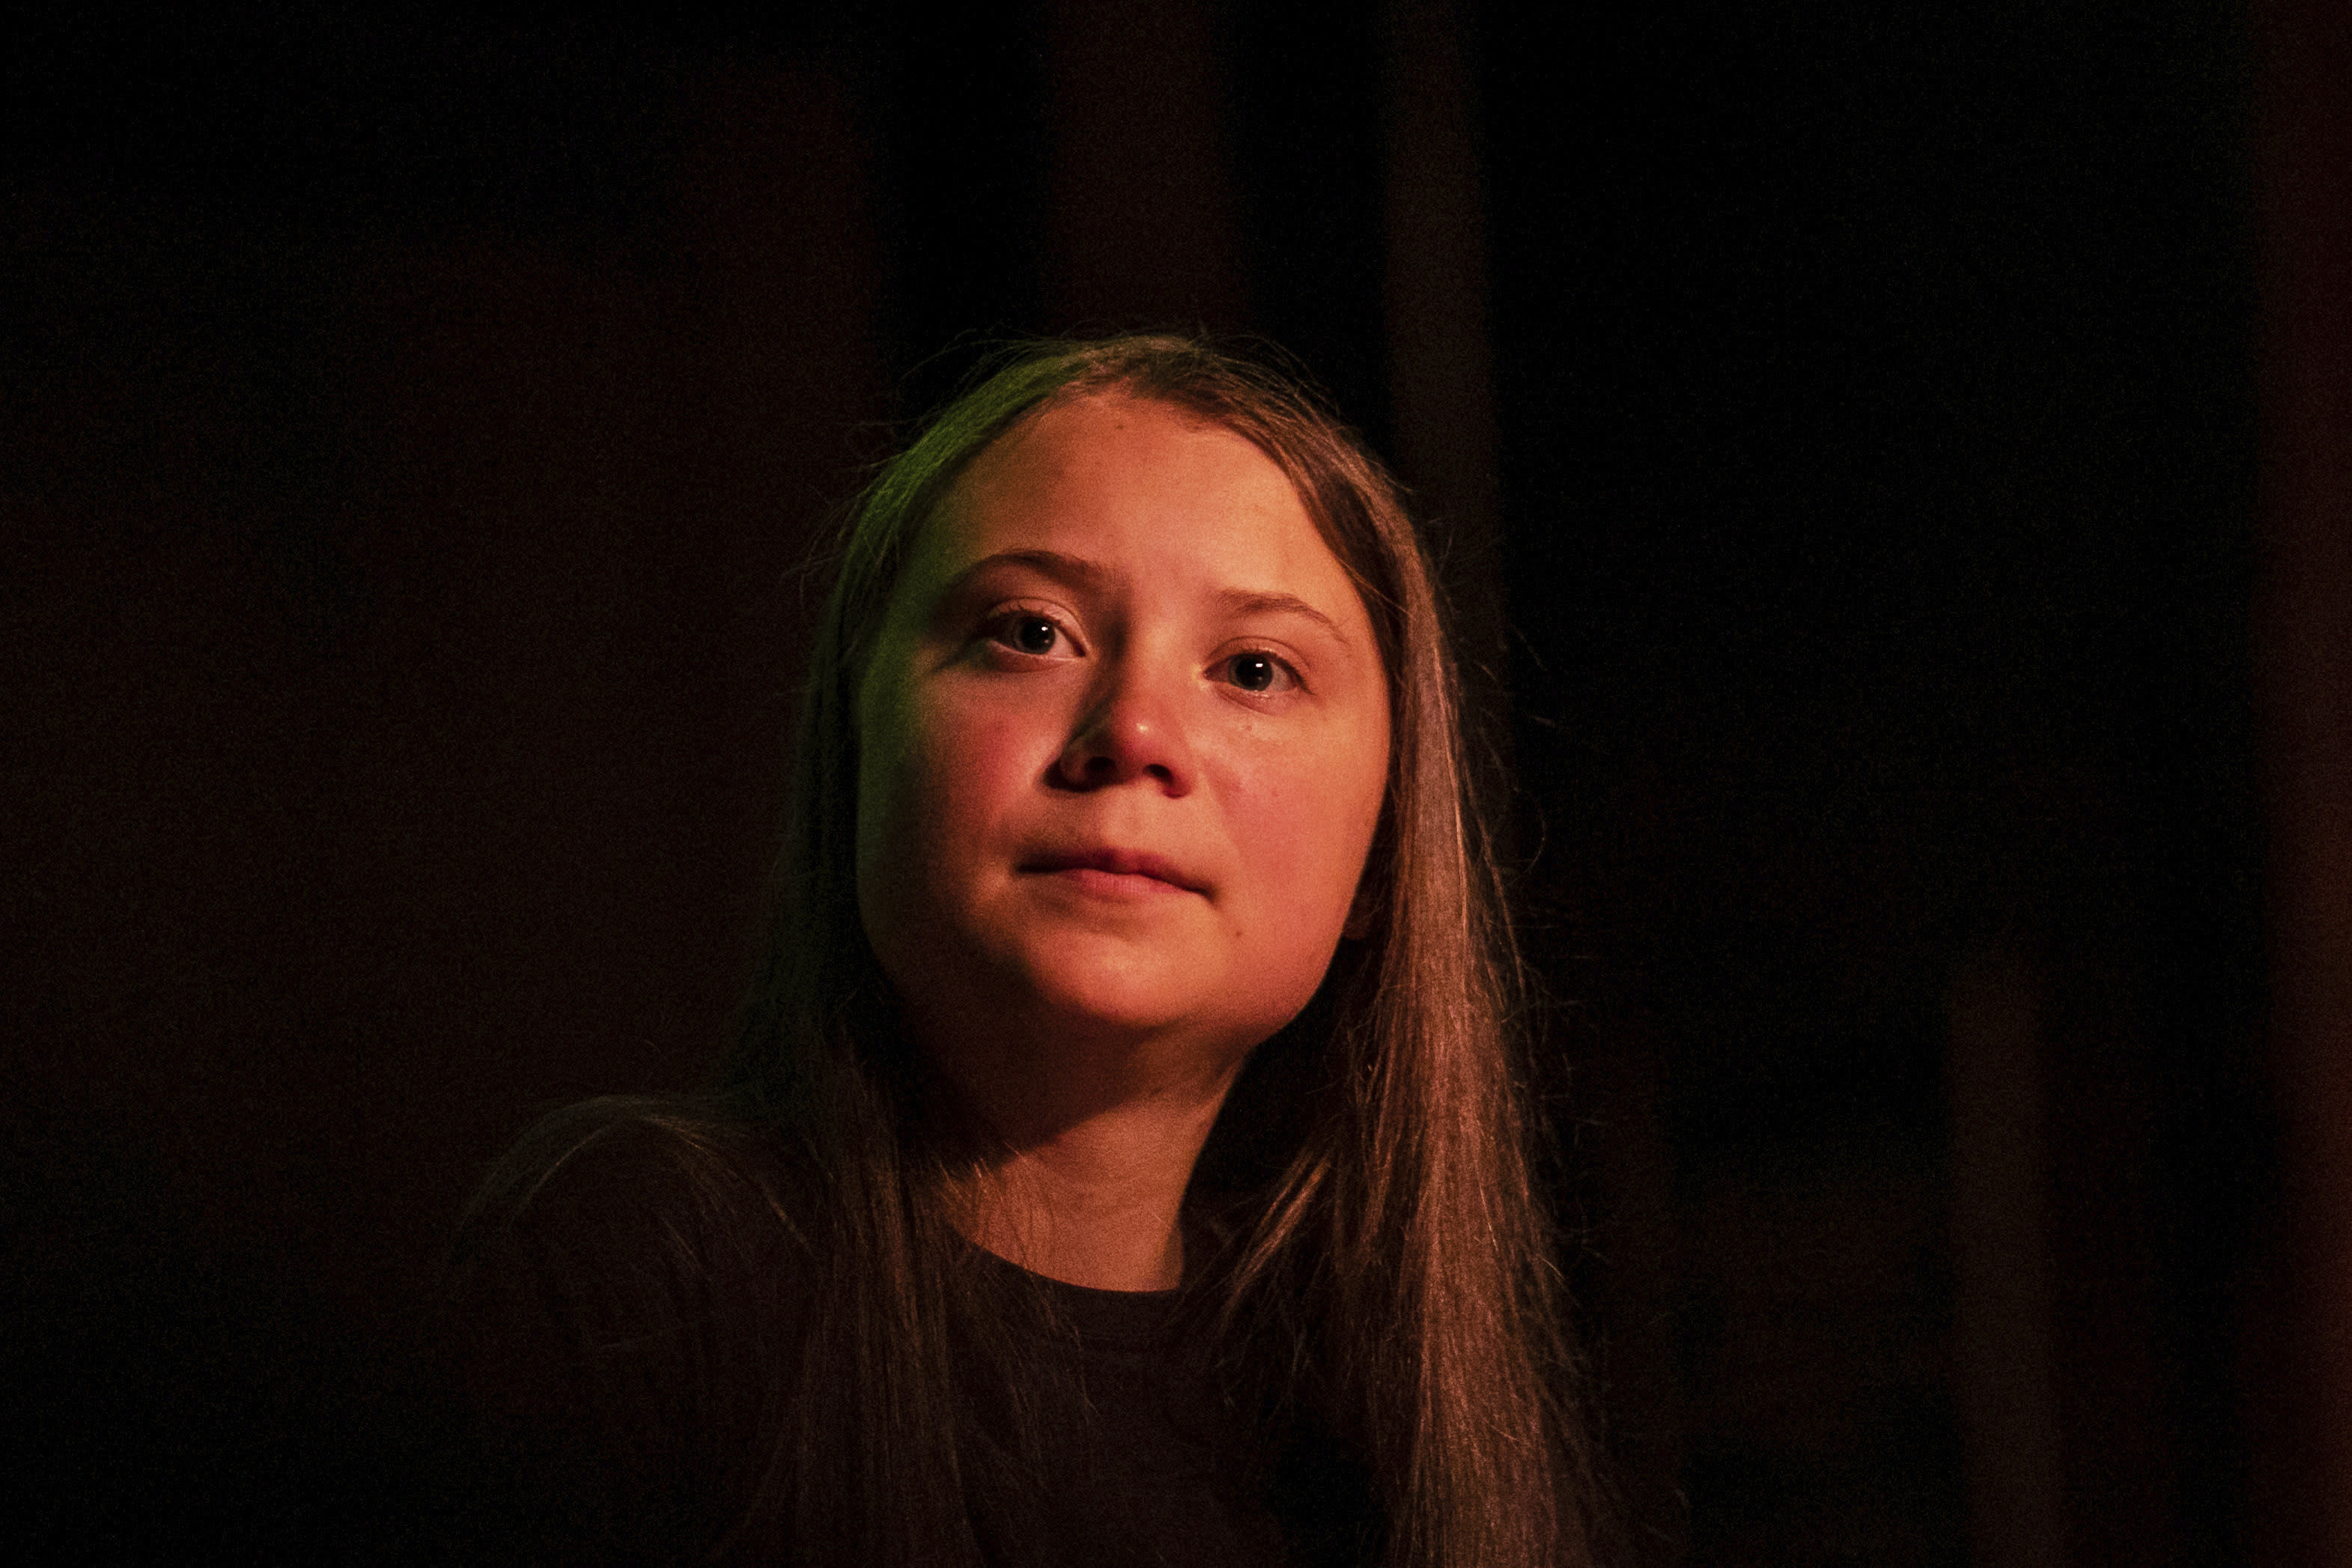 """FILE - In this Monday, Sept. 9, 2019 file photo, Greta Thunberg pauses as she speaks at the Society for Ethical Culture in New York. """"No _ Church of Sweden has (obviously) not proclaimed Greta Thunberg as successor of Jesus Christ,"""" Martin Larsson, a spokesman with the Church of Sweden, told the The Associated Press in an email. However, in 2018, one of its parishes did, tweeting in Swedish: """"Announcement! Jesus of Nazareth has now assigned one of his successors, namely Greta Thunberg."""" The claim circulated on social media after Thunberg, who is Swedish, led worldwide demonstrations to highlight climate change and addressed the Climate Action Summit at the United Nations in September 2019. (AP Photo/Jeenah Moon)"""